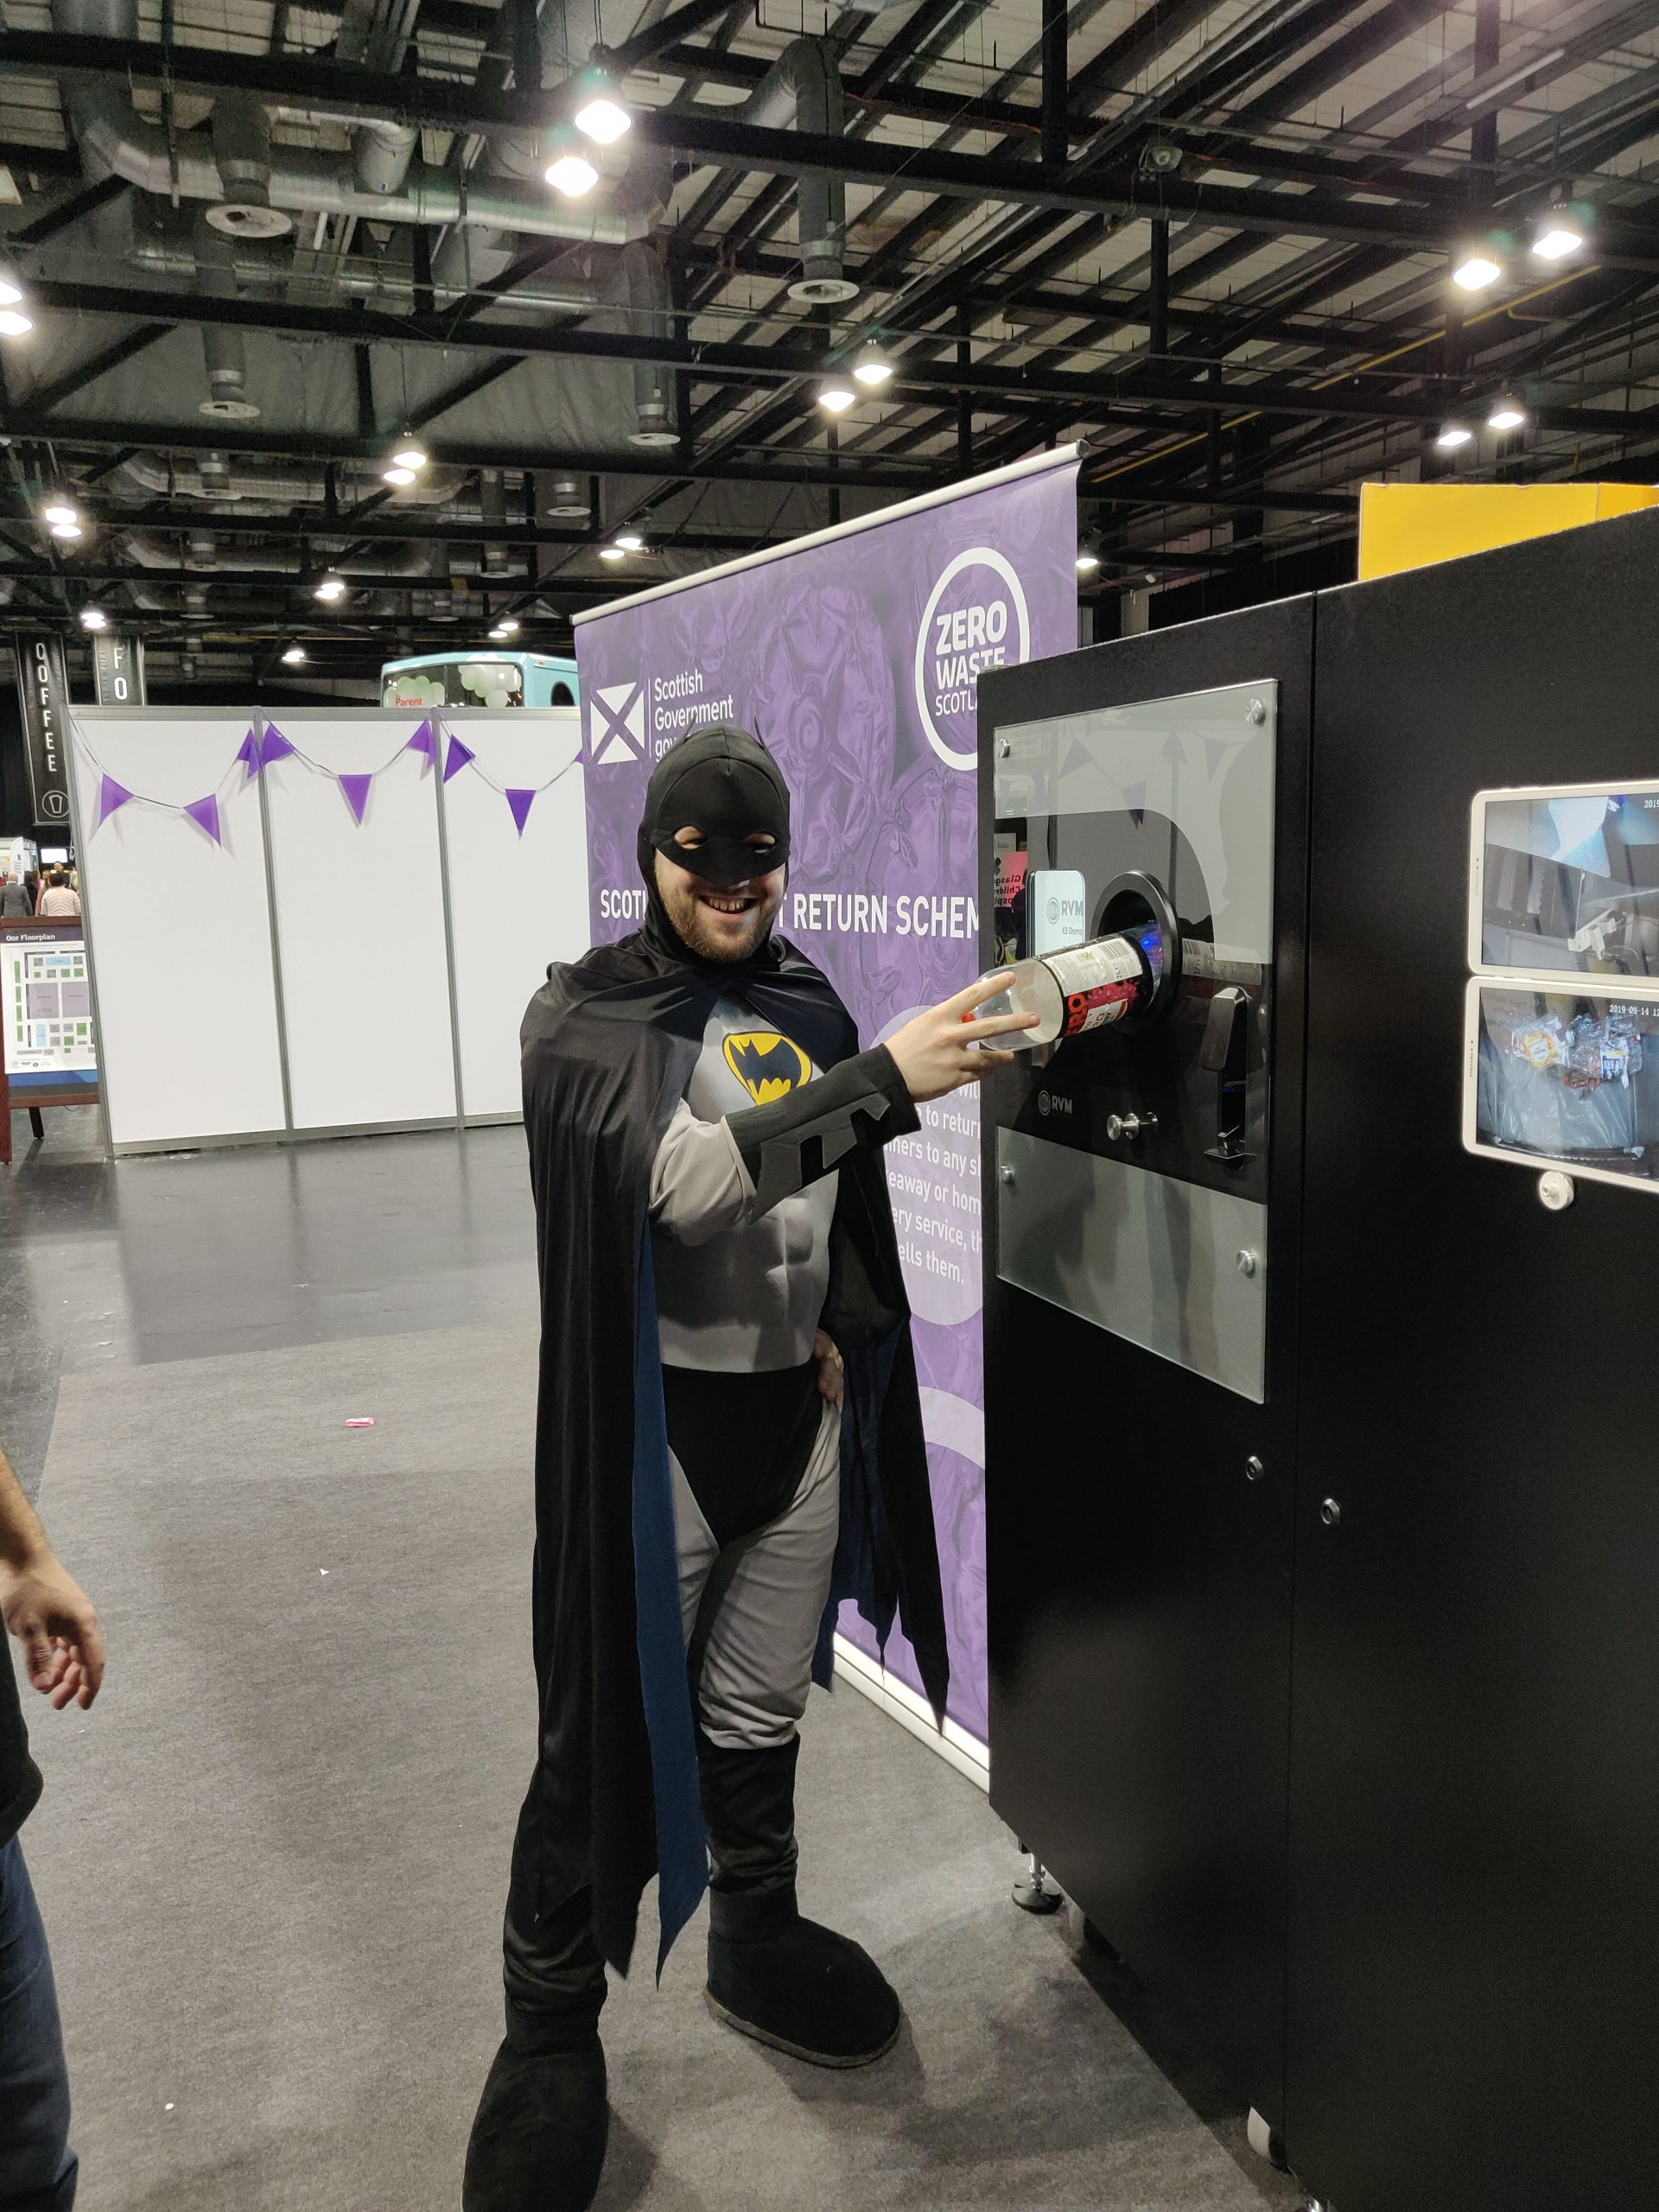 Batman using the Reverse Vending at Zero Waste Scotland Stand